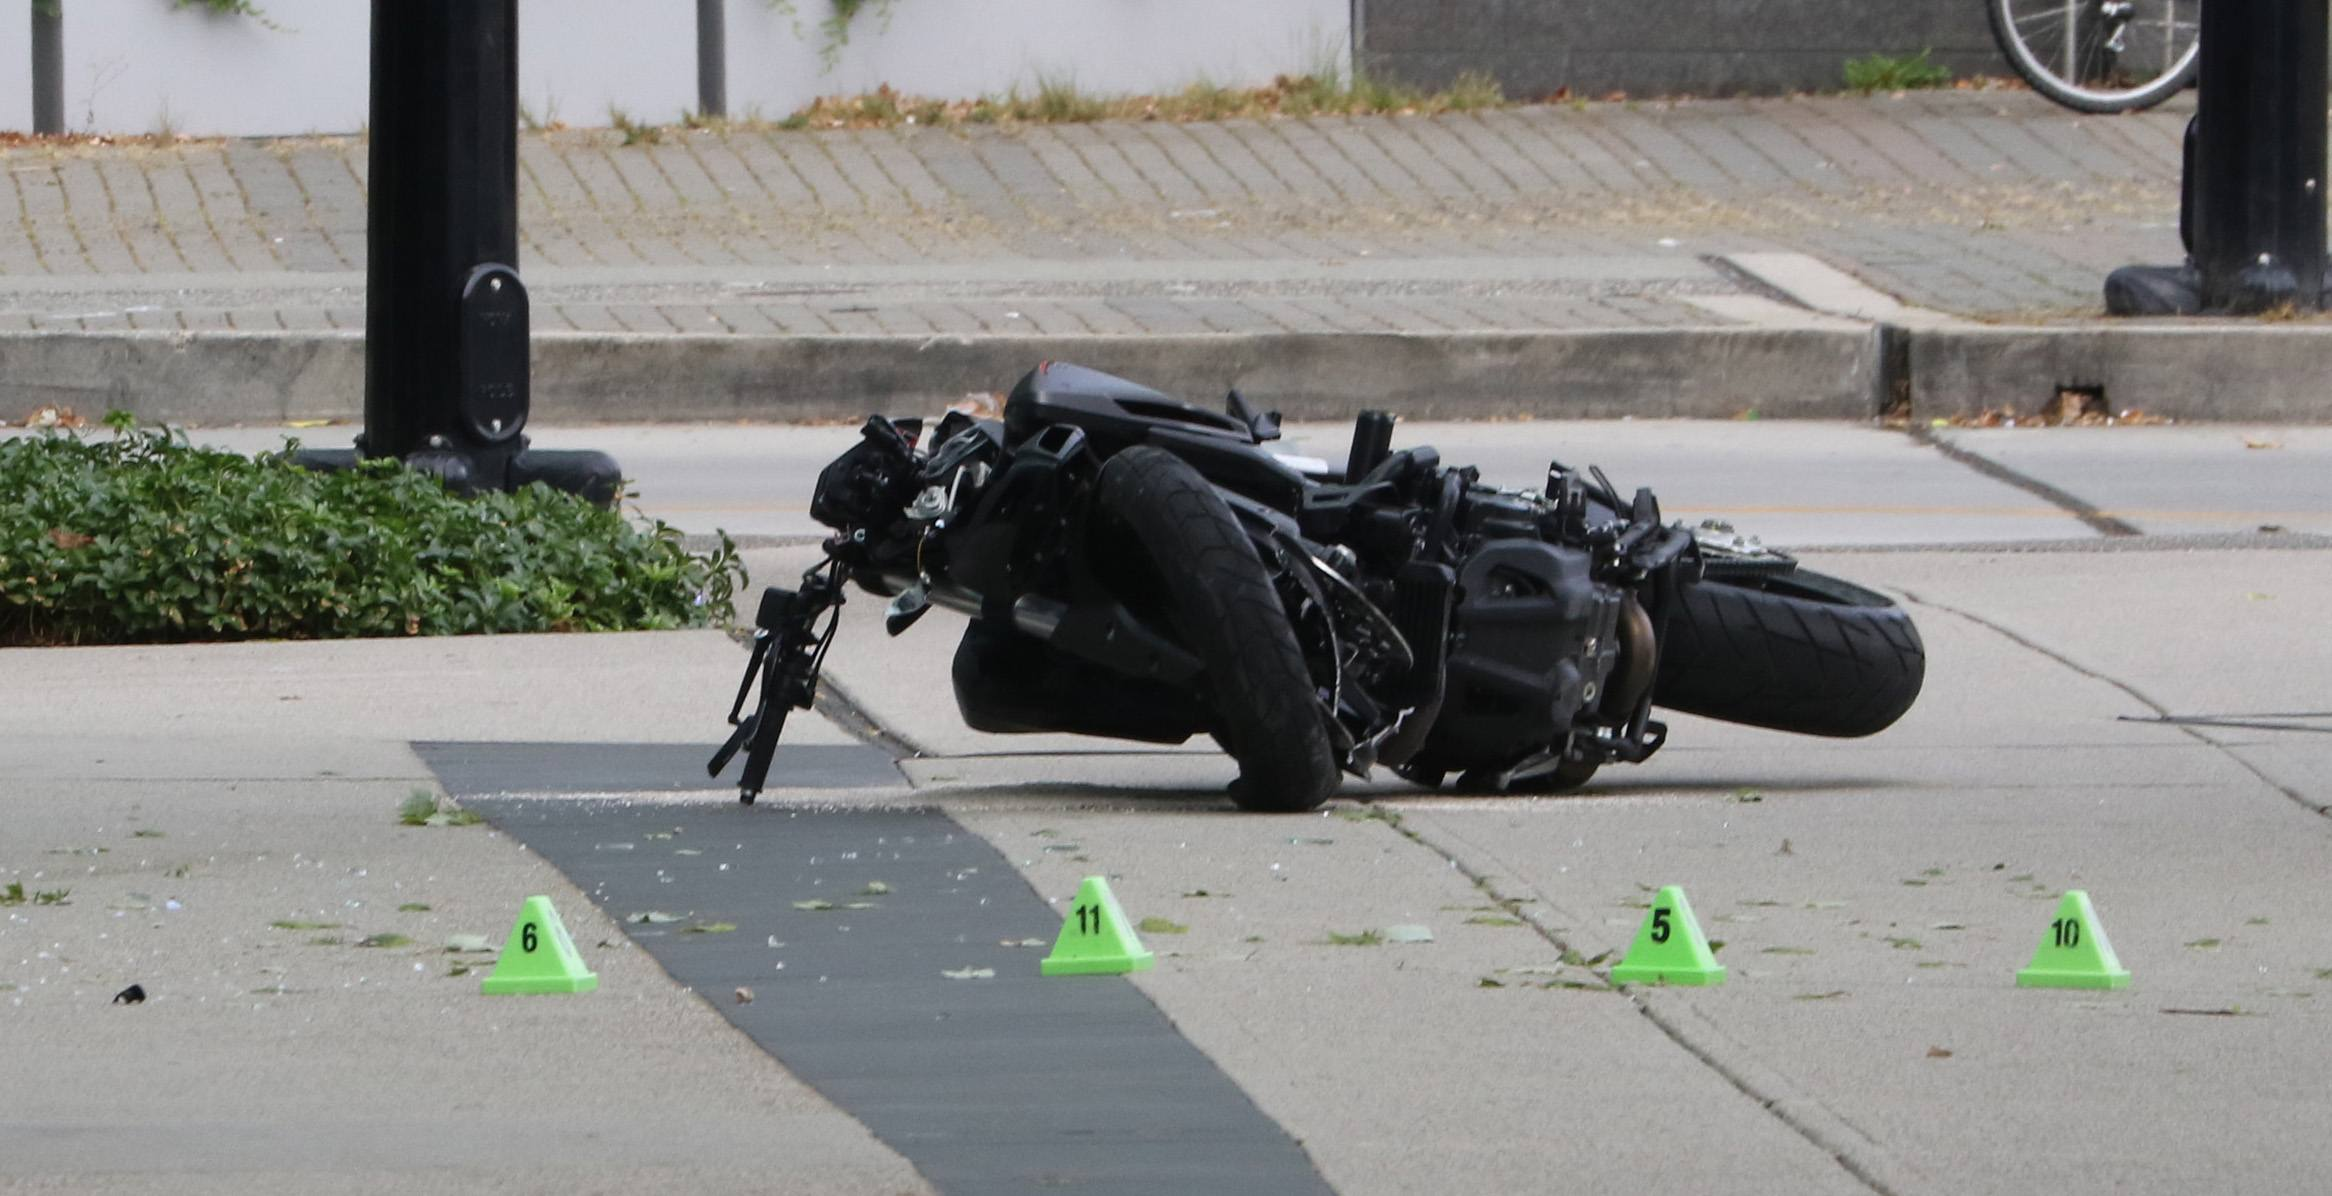 The motorcycle on the set of deadpool 2 on monday morning daily hive